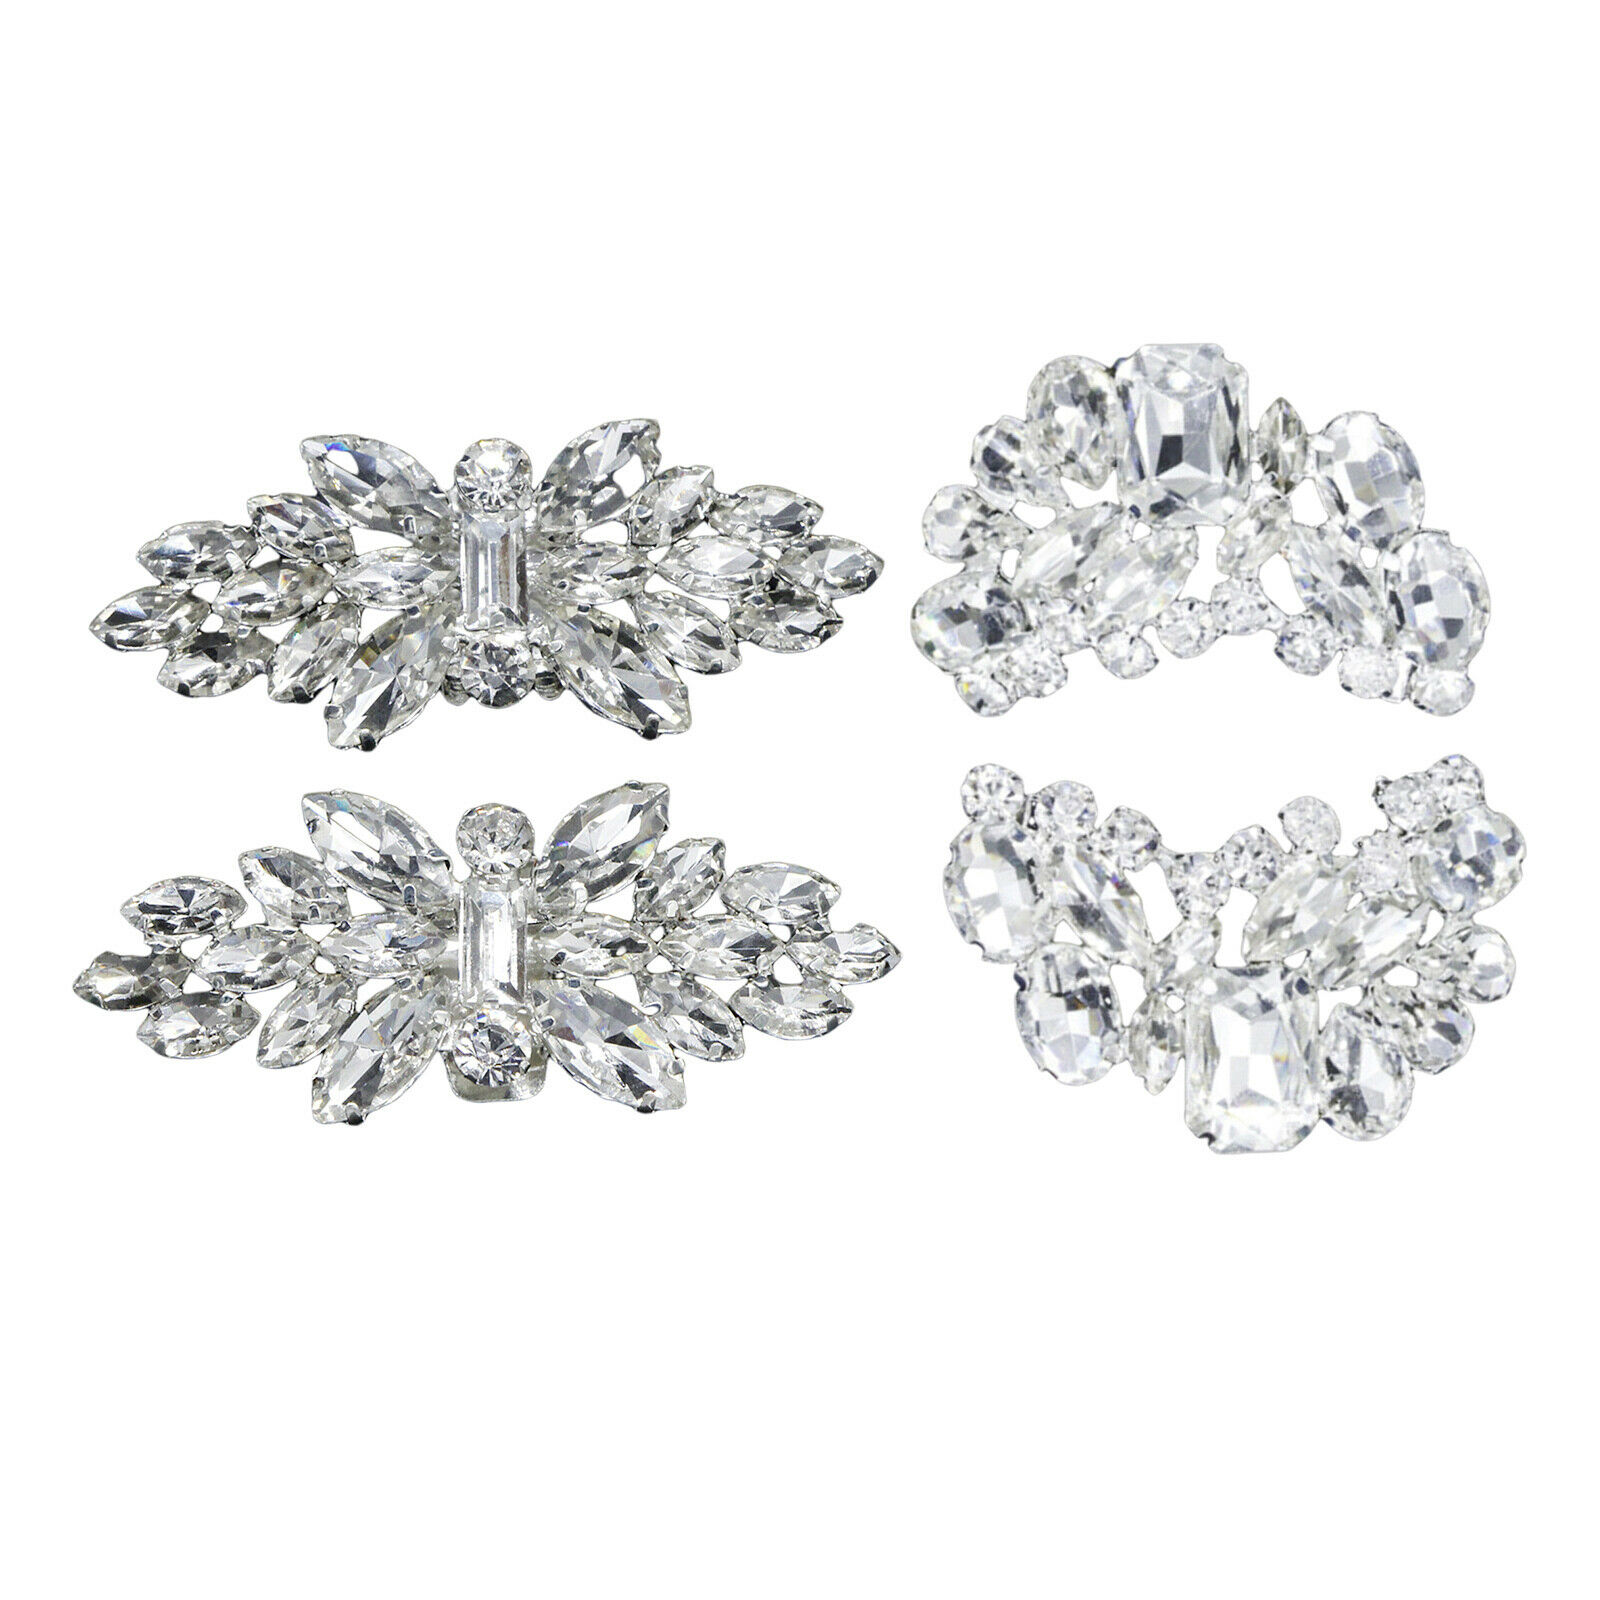 1 Pair Rhinestone Shoe Clips Women's Removable Craft Party Prom Shoe Buckle